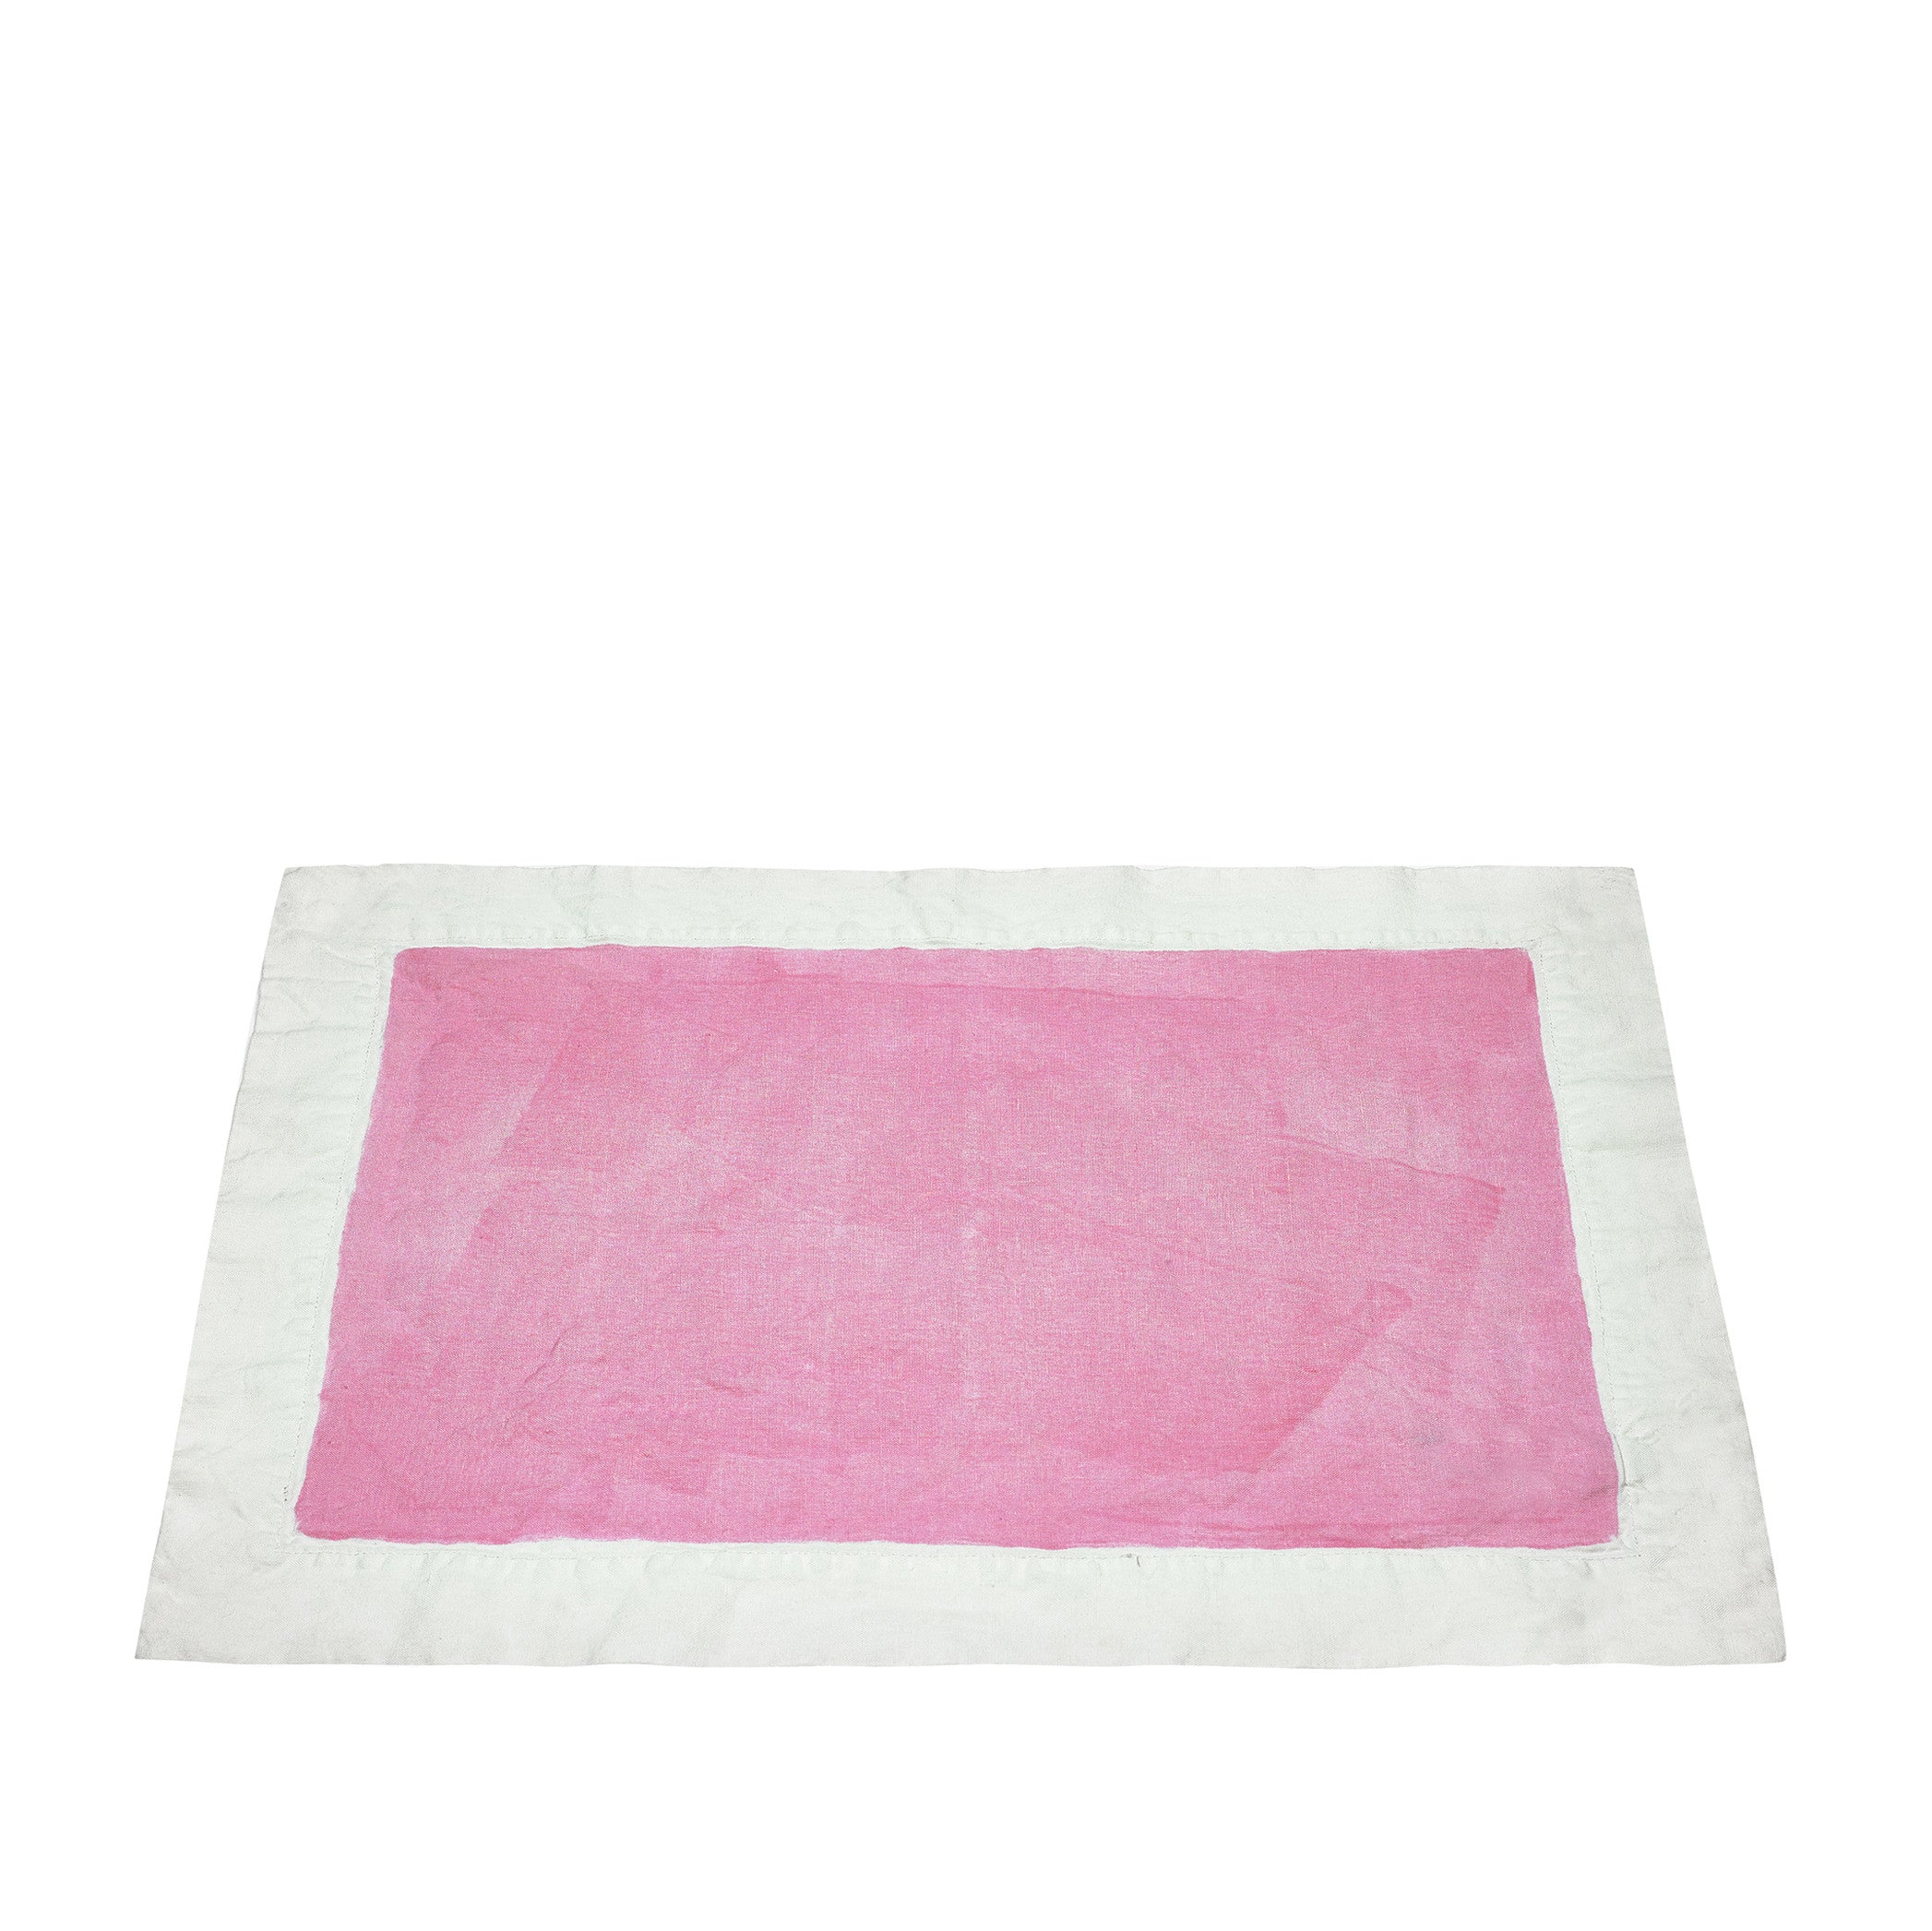 Full Field Linen Placemat in Rose Pink